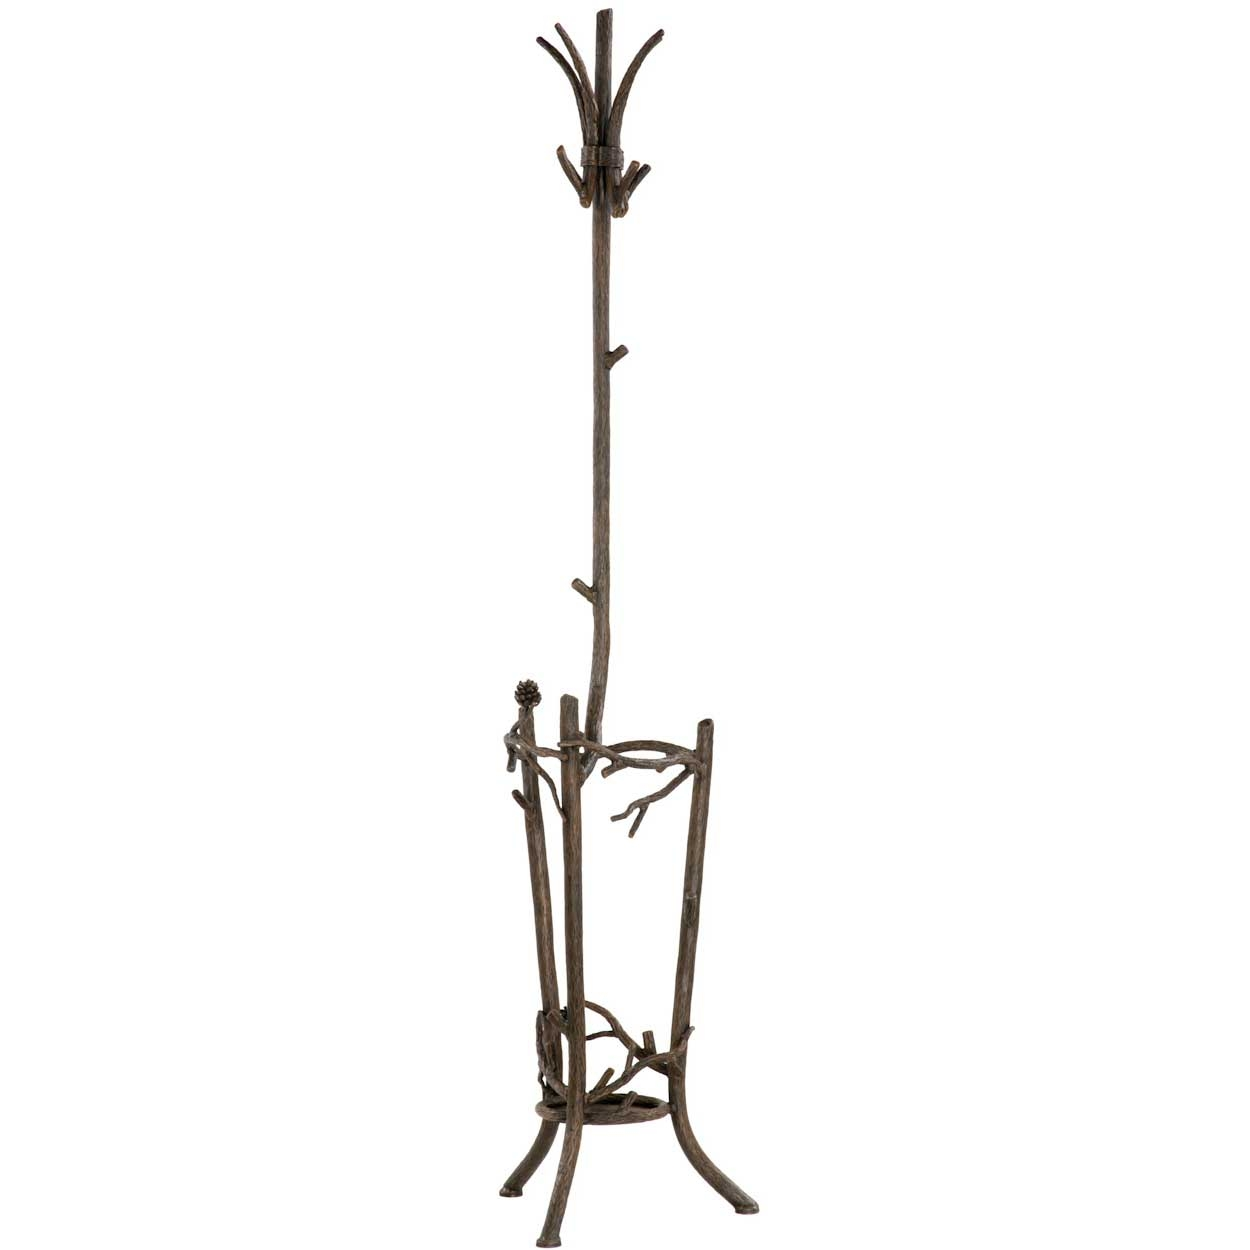 unique design of standing Coat rack with umberella stand and triple legs